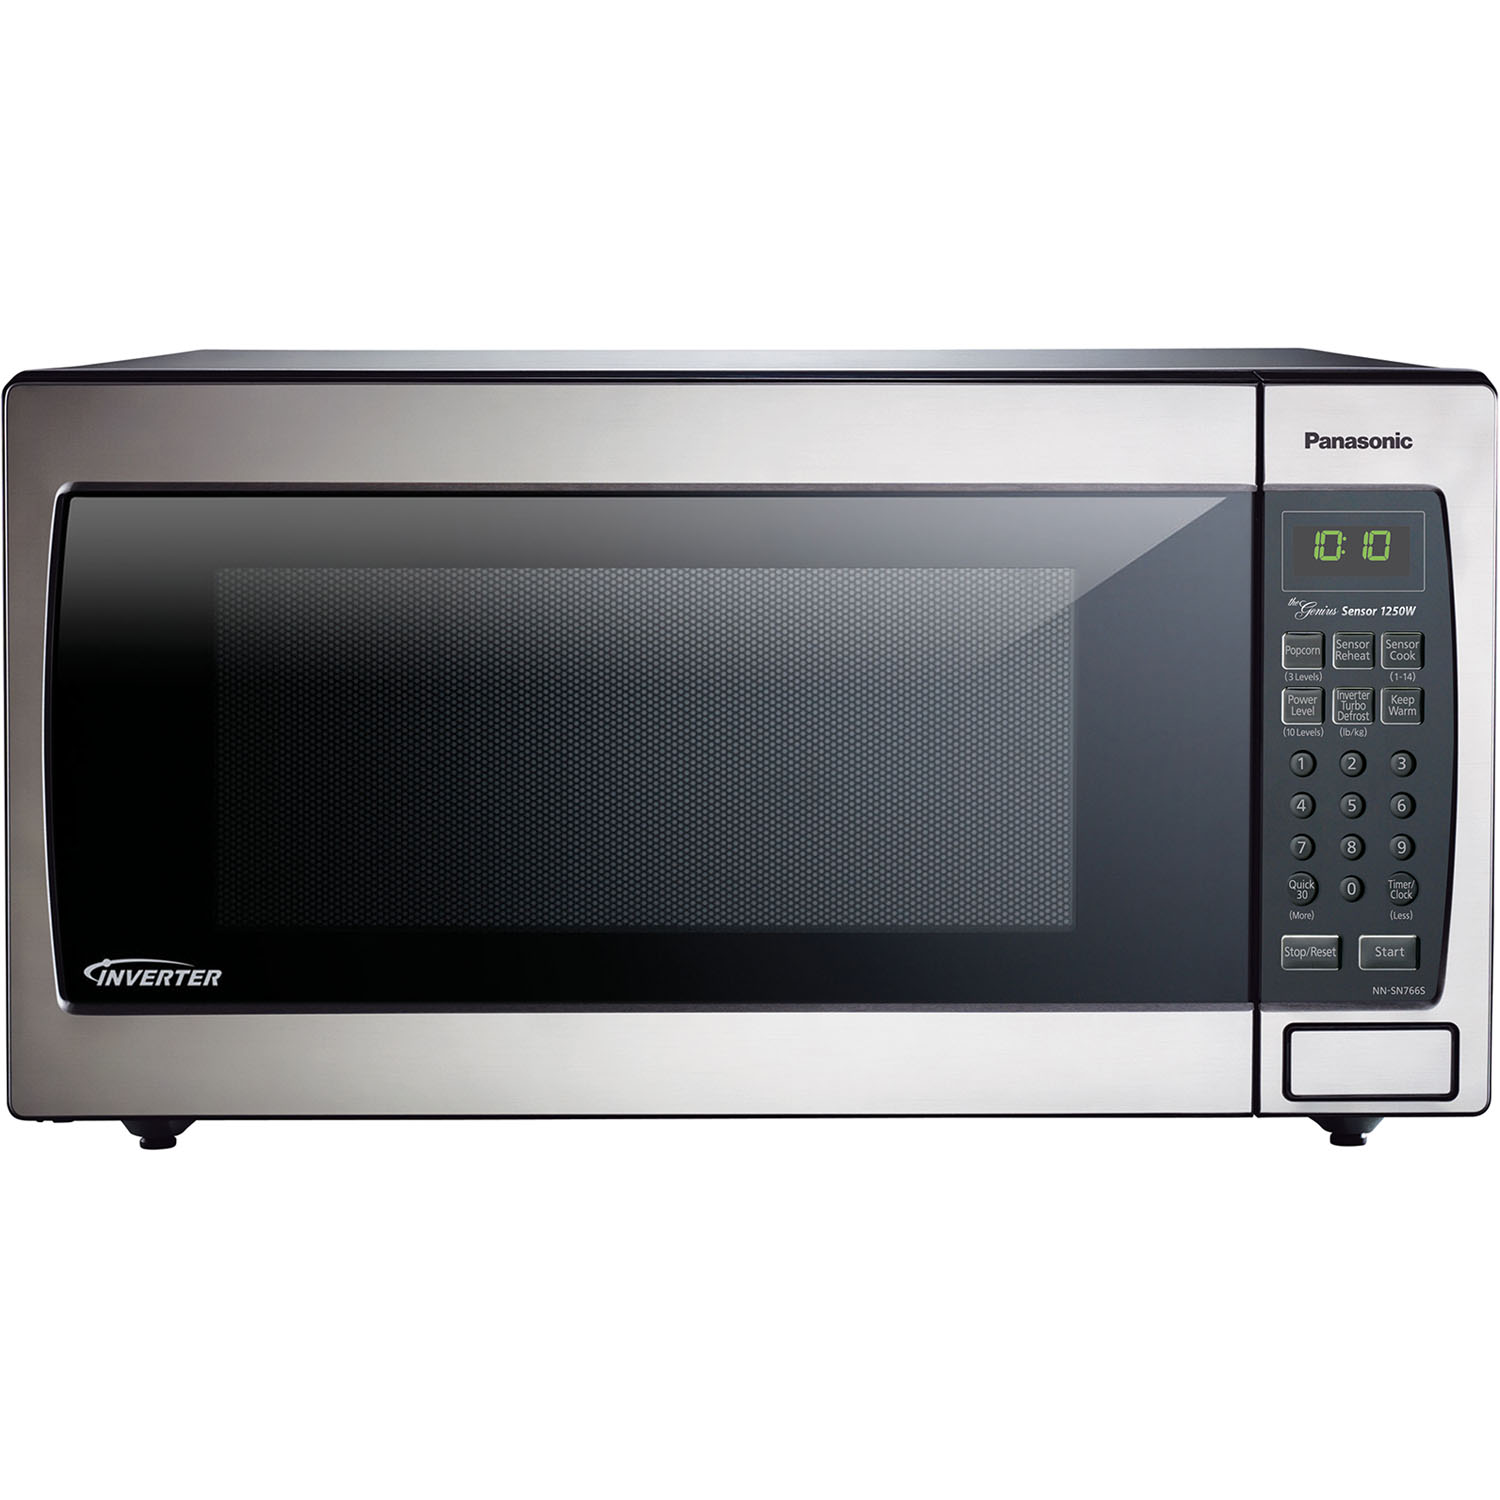 Panasonic 1.6 cu. ft Stainless Steel Microwave with Inverter, NN-SN766S